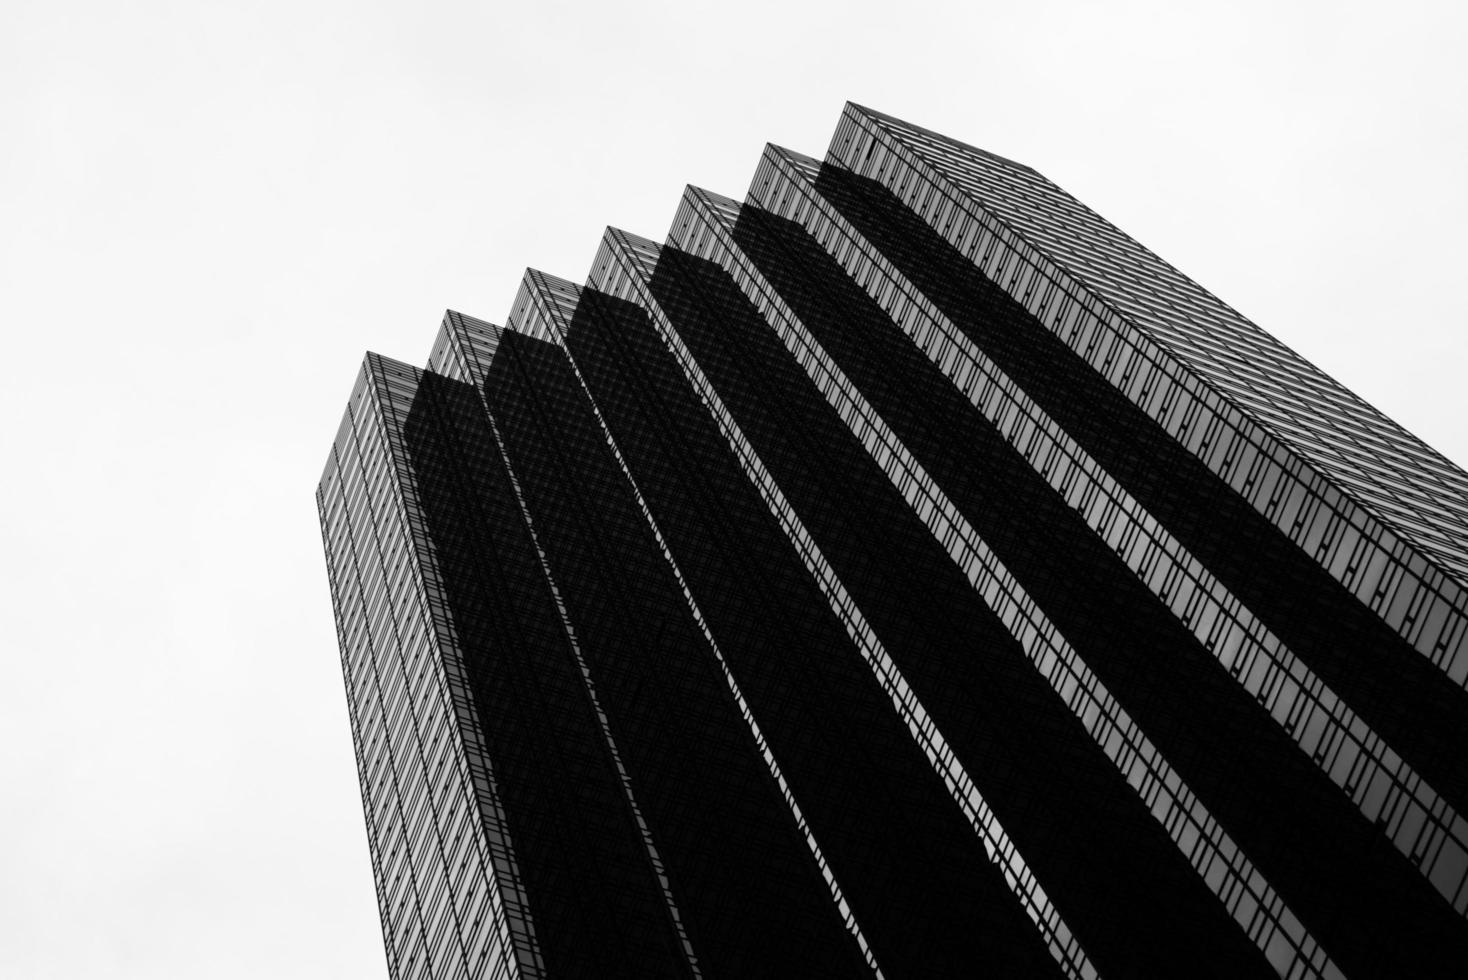 Black and white photo of skyscraper